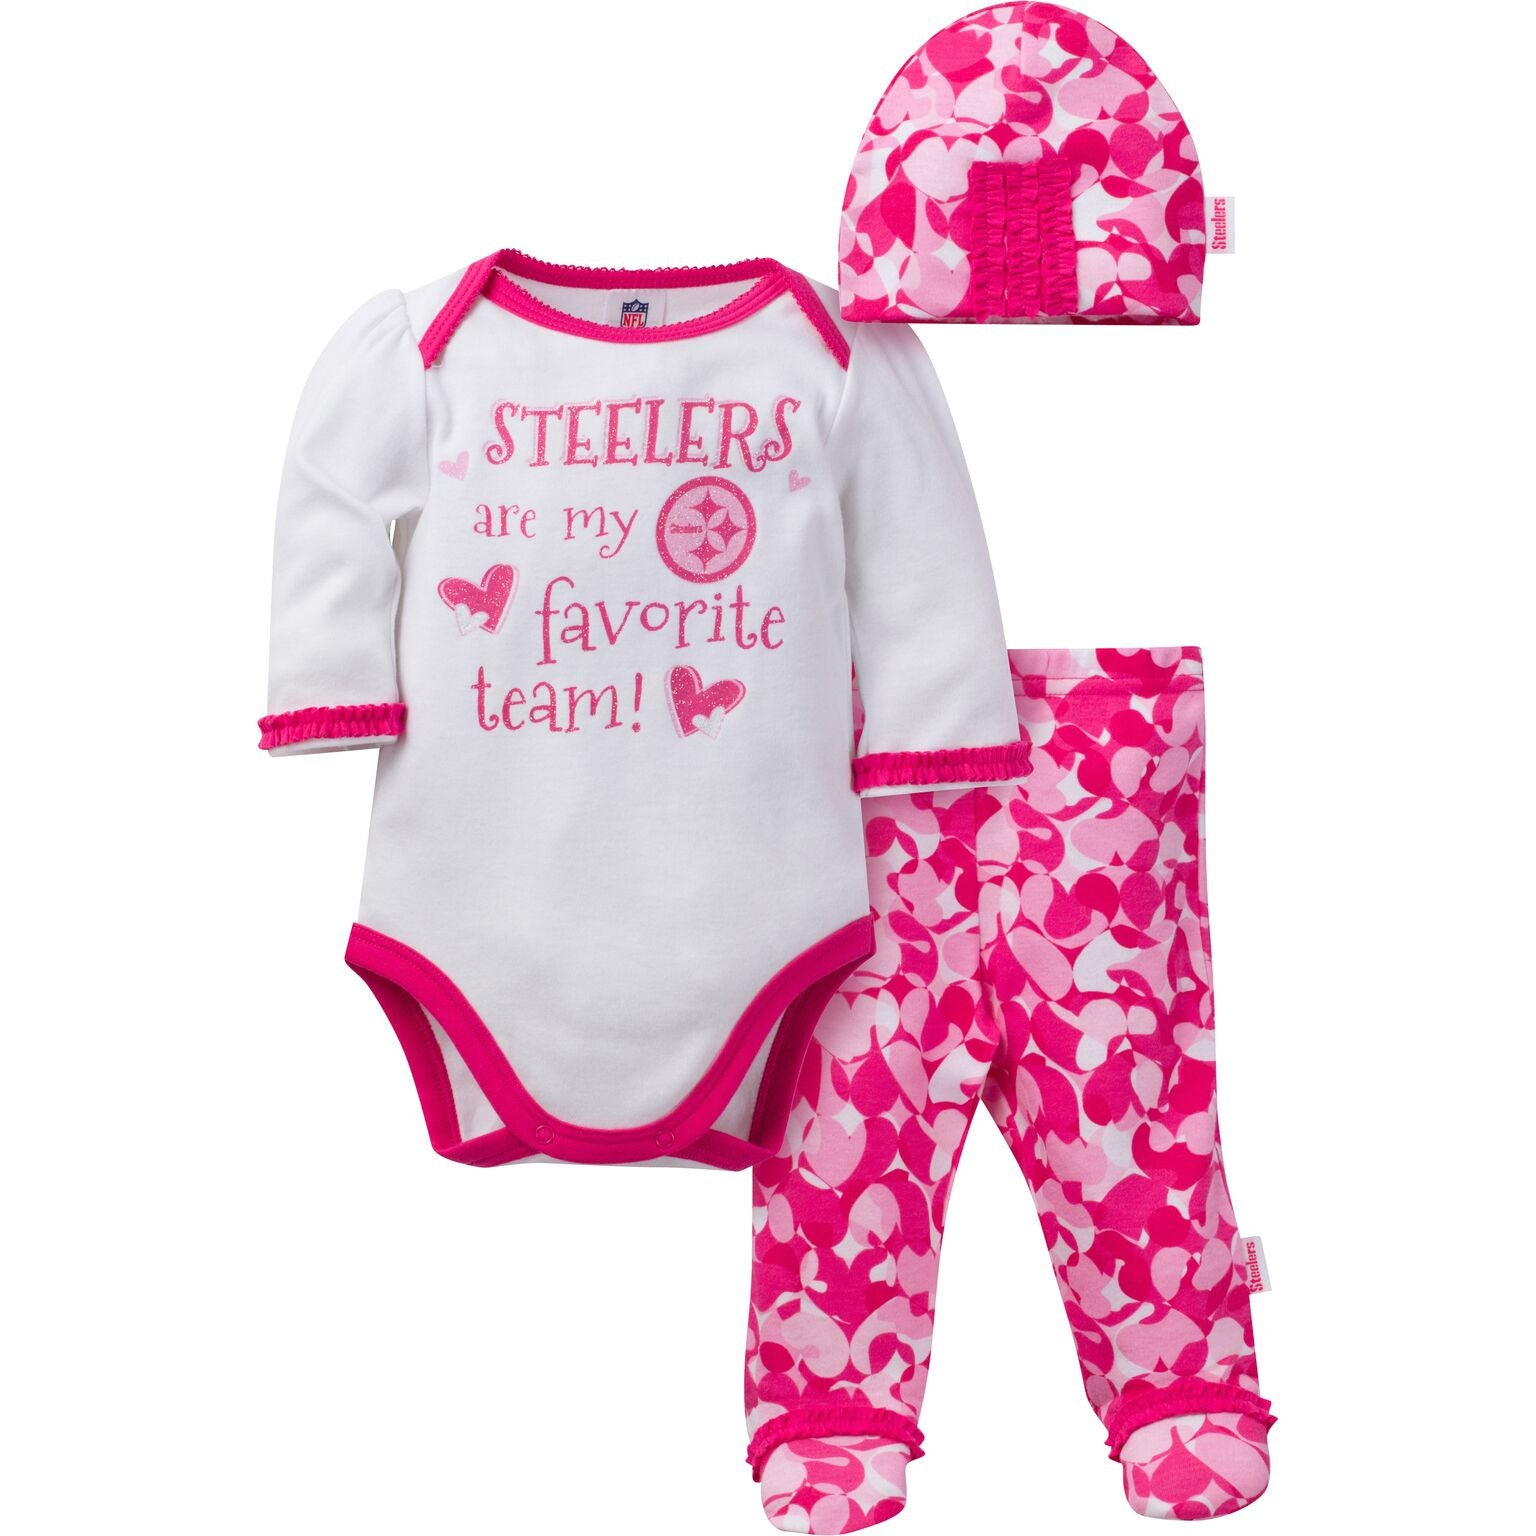 Steelers Baby Girl 3 Piece Outfit Babyfans